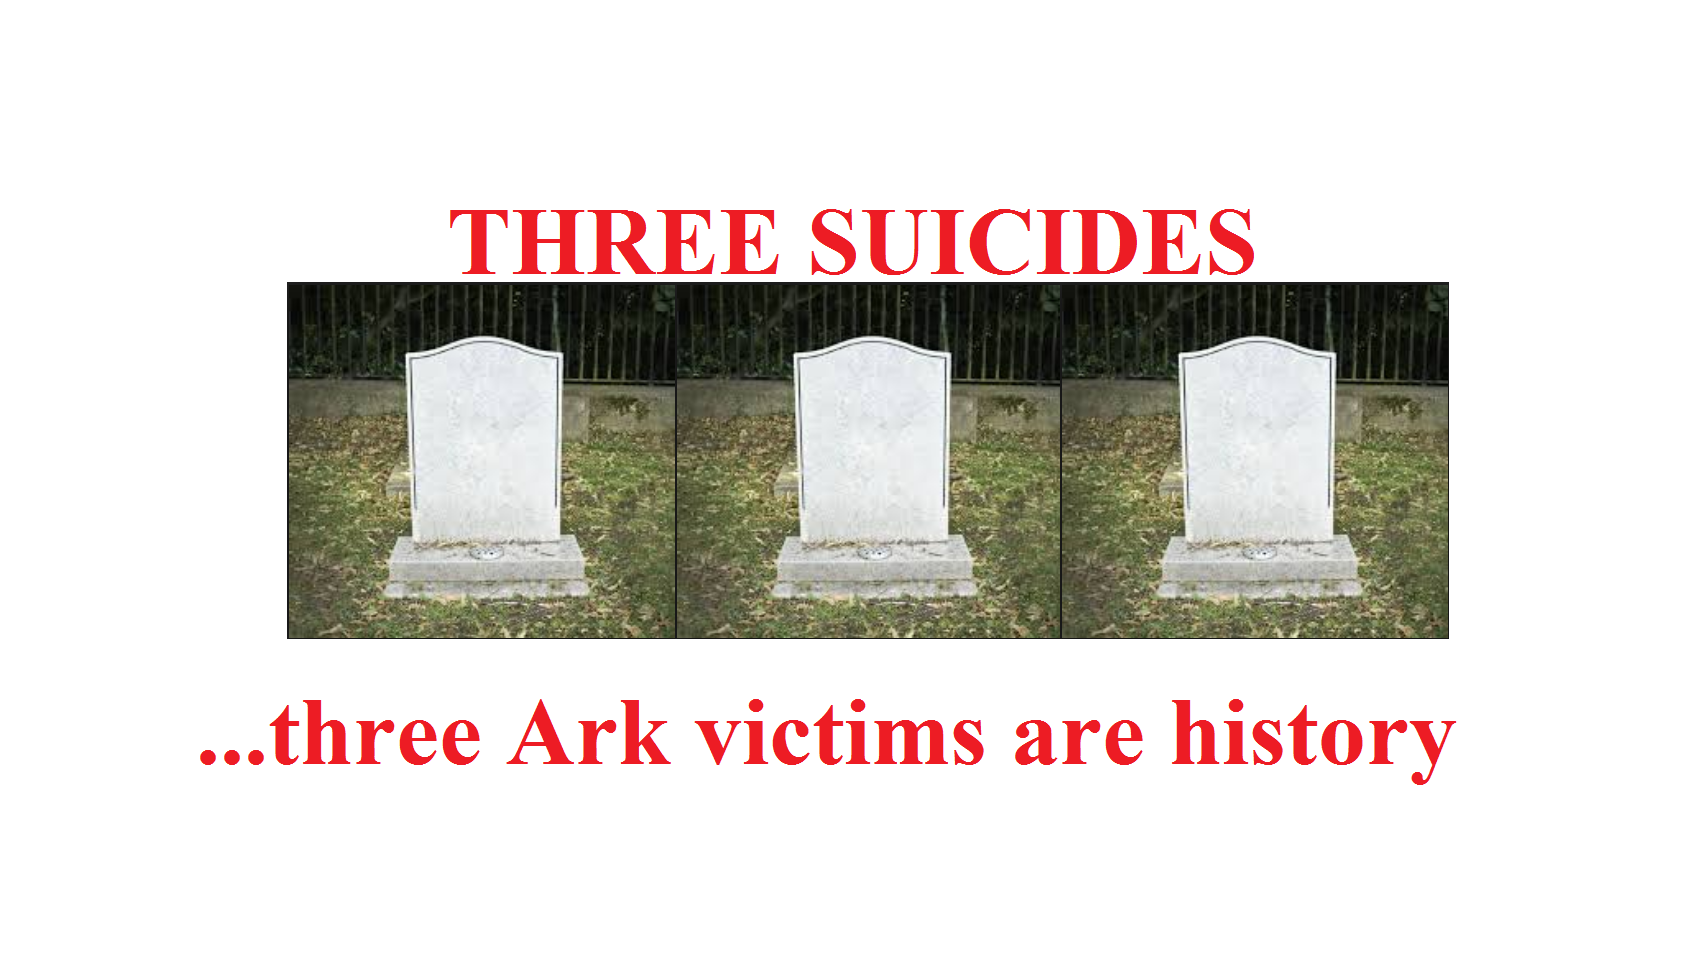 Pension Life Blog - Mastermind - Stephen Ward Is responsible for the suicides of three victims of the ARK scandal - Ark is now in the hands of dalriada trustees